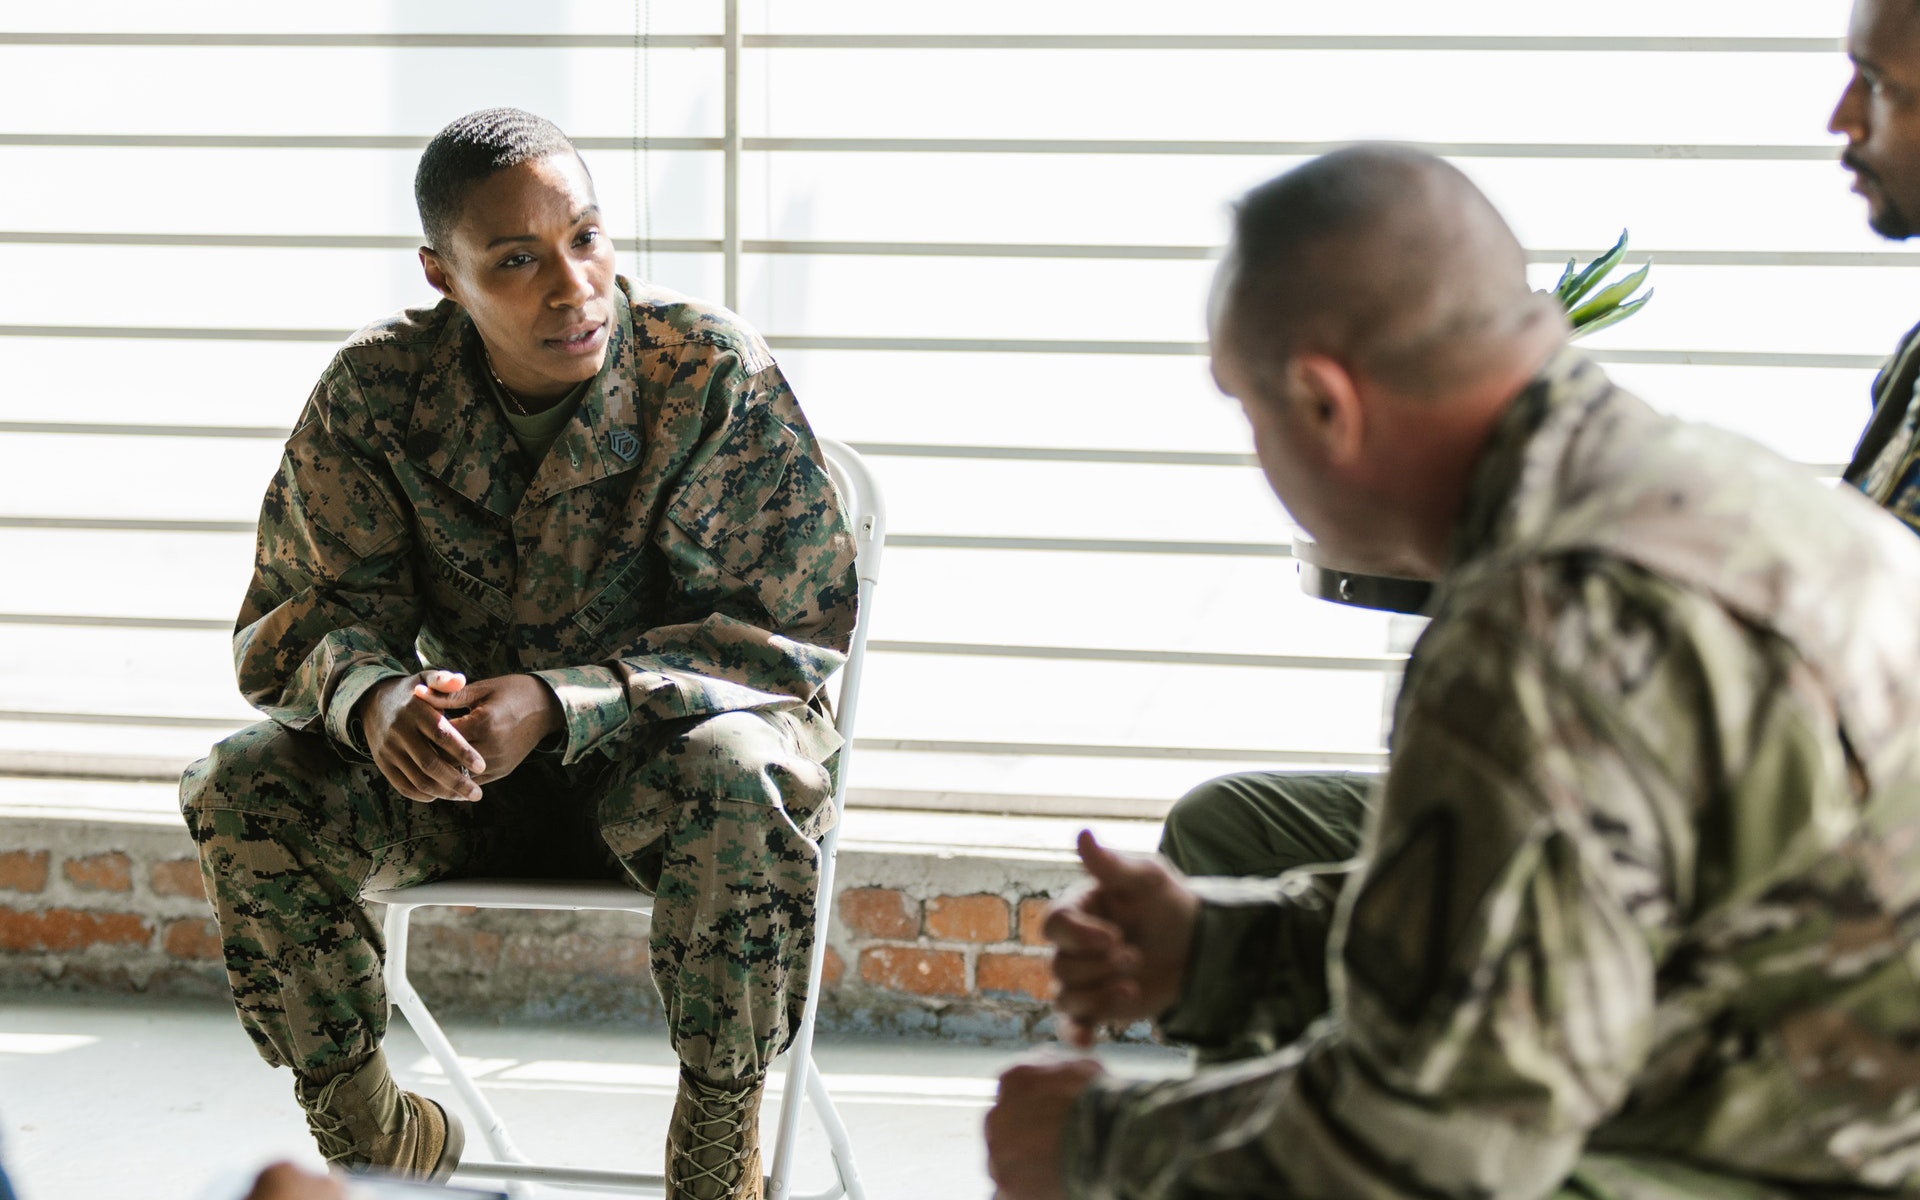 Military personnel having a discussion.